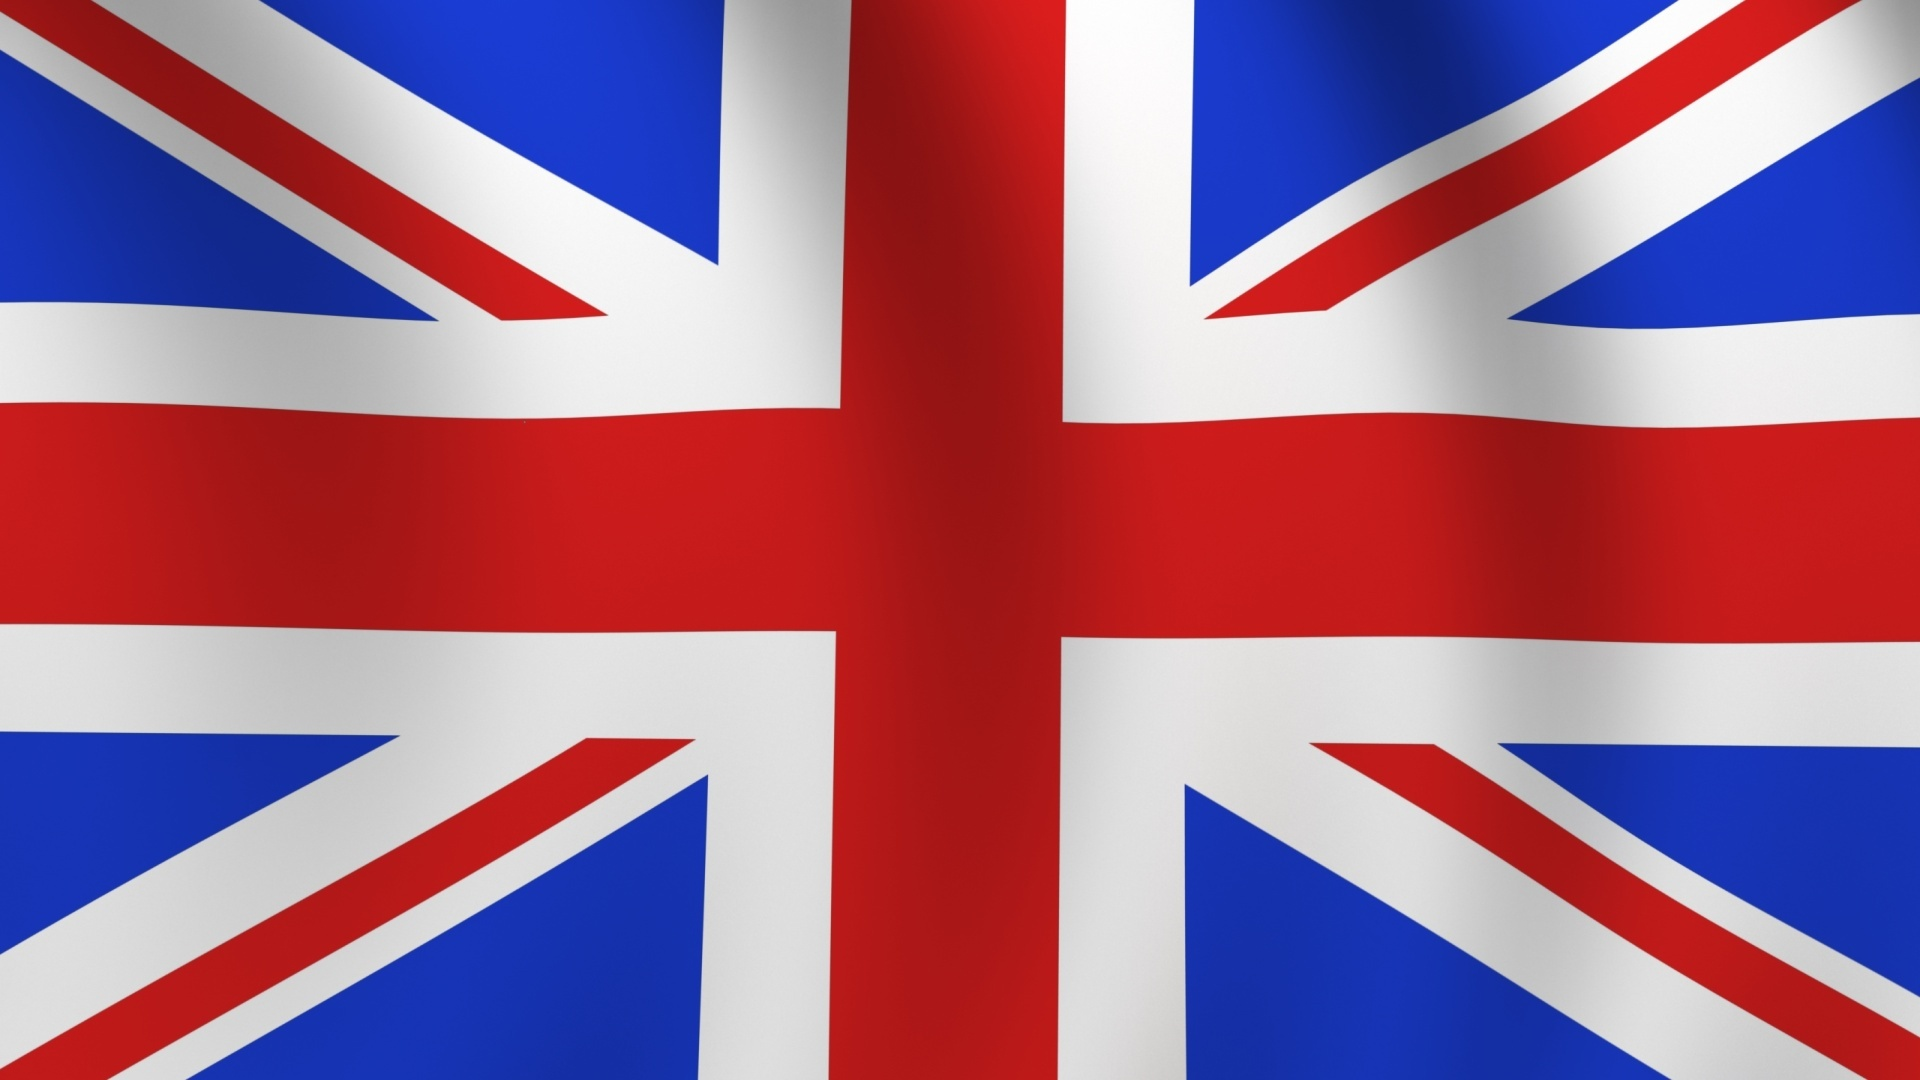 union-jack-flag-hd-wallpaper.jpg